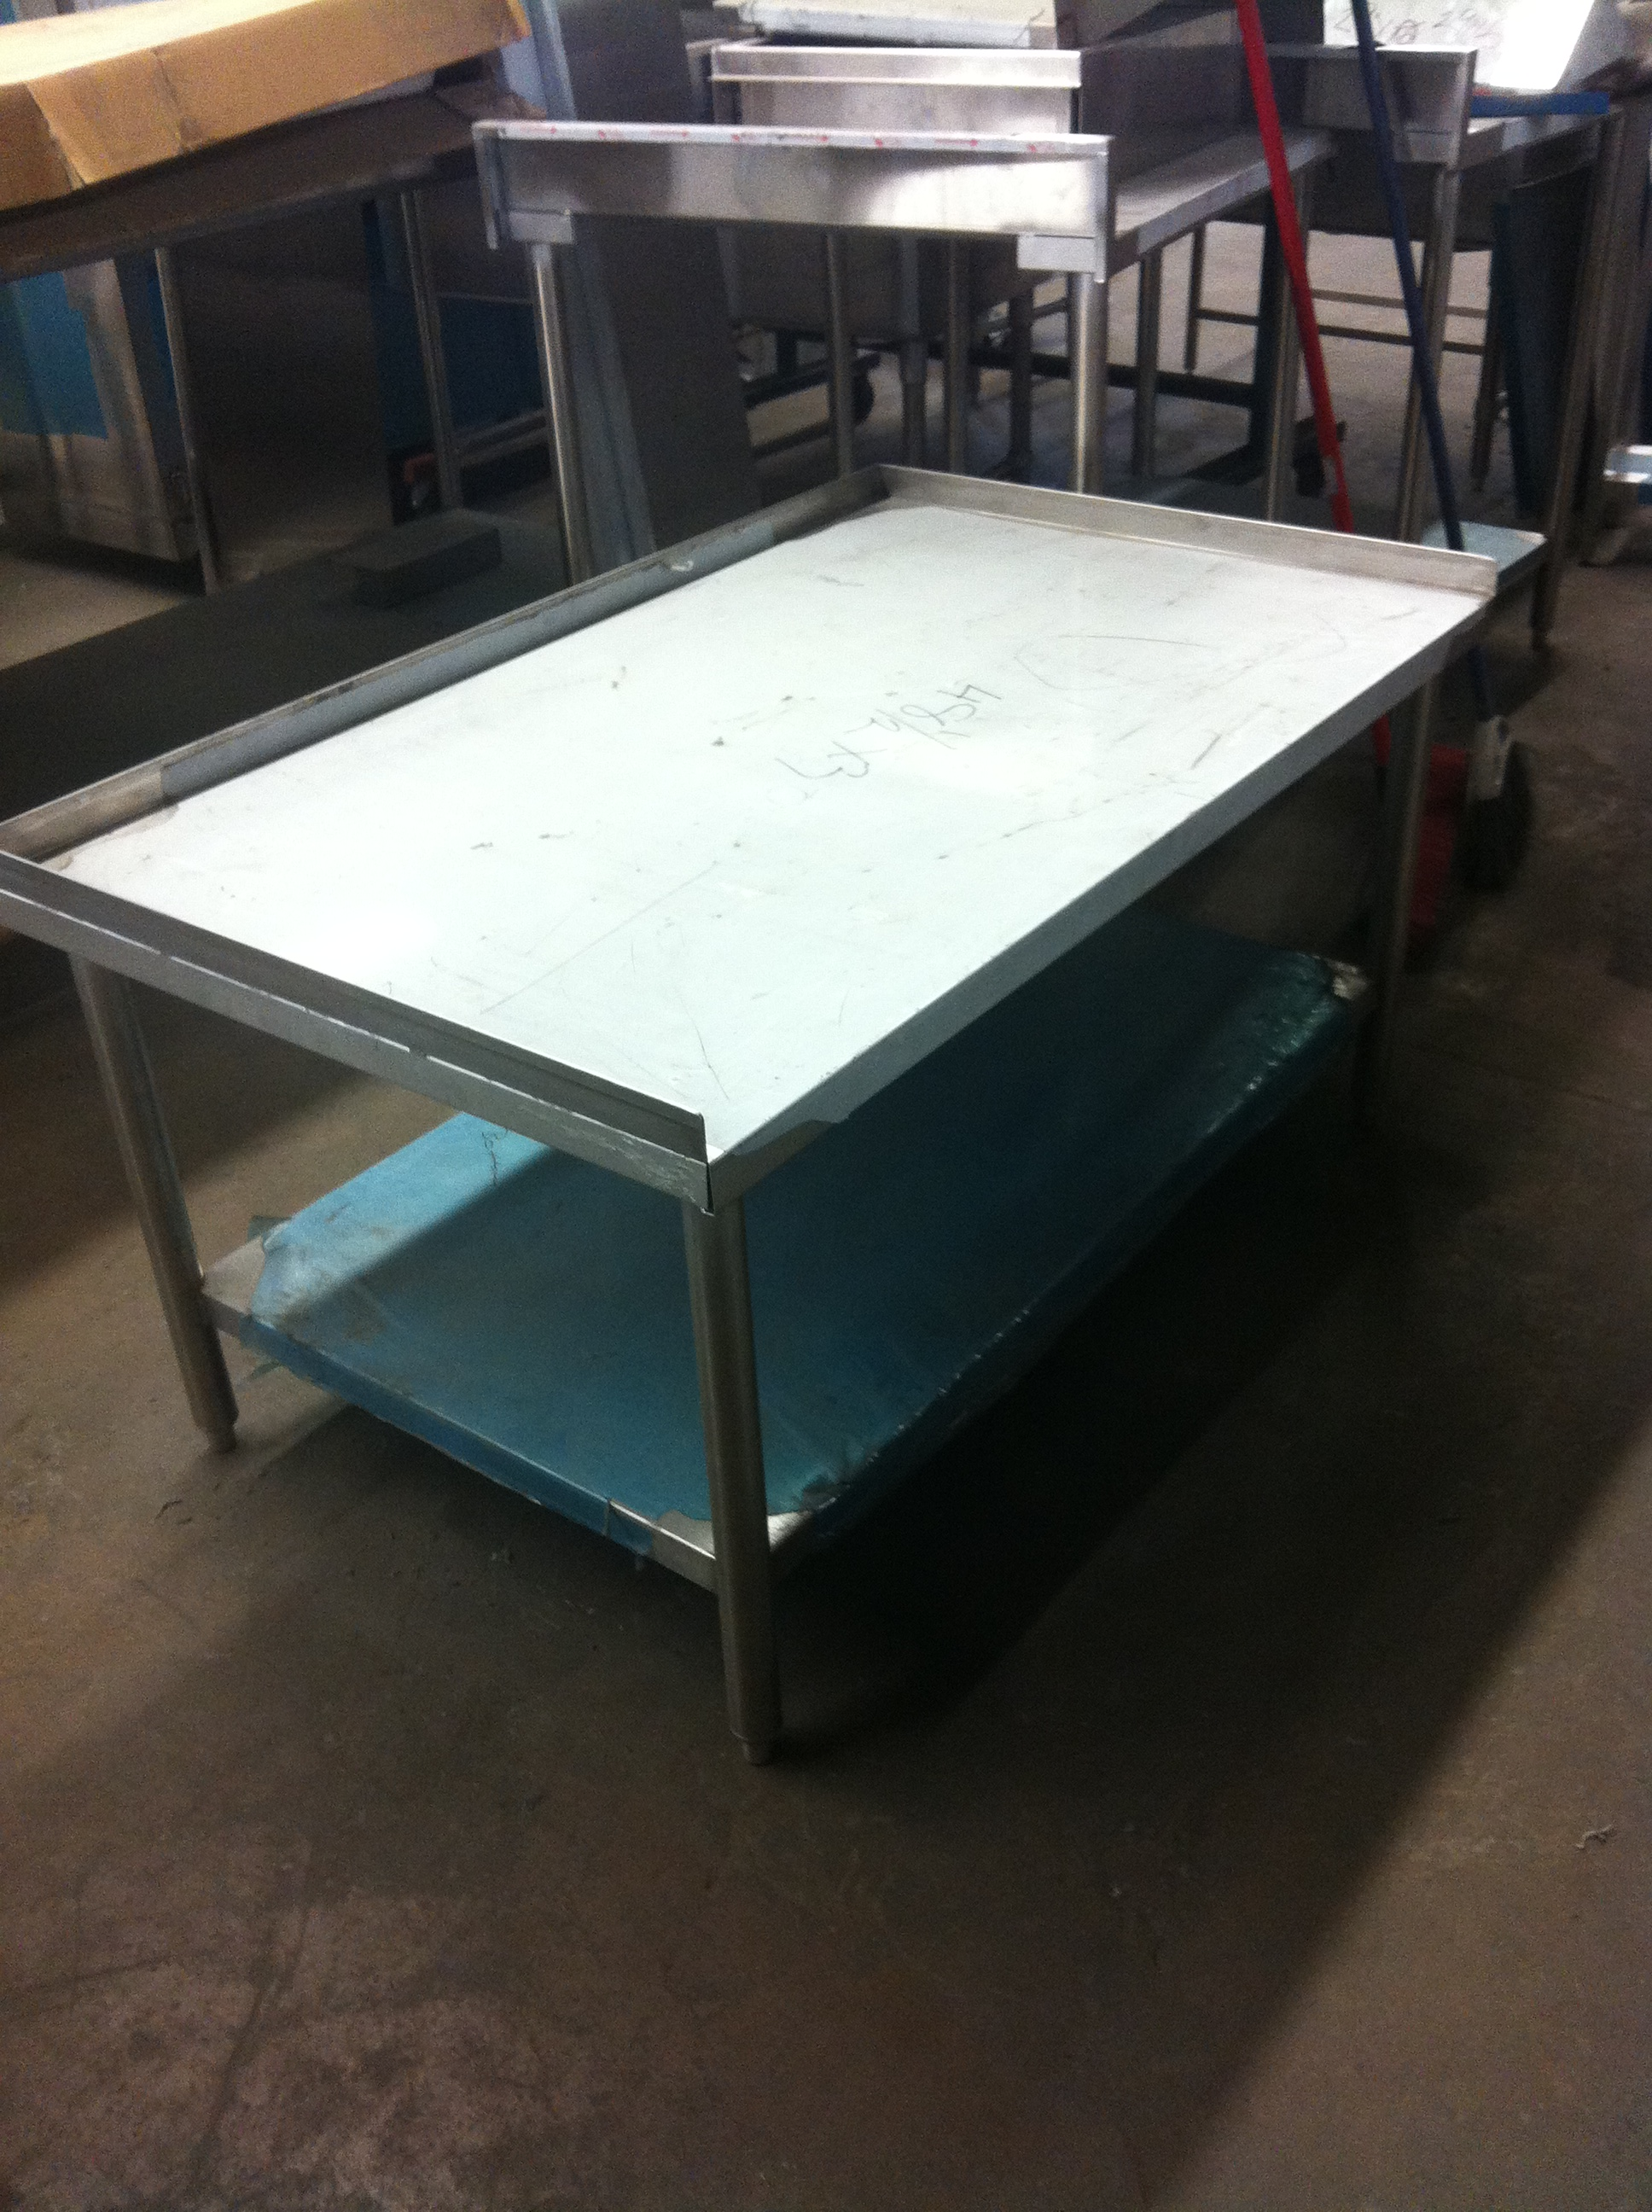 Stainless Steel Table With Backsplash And Sides - Stainless steel table with backsplash and sides